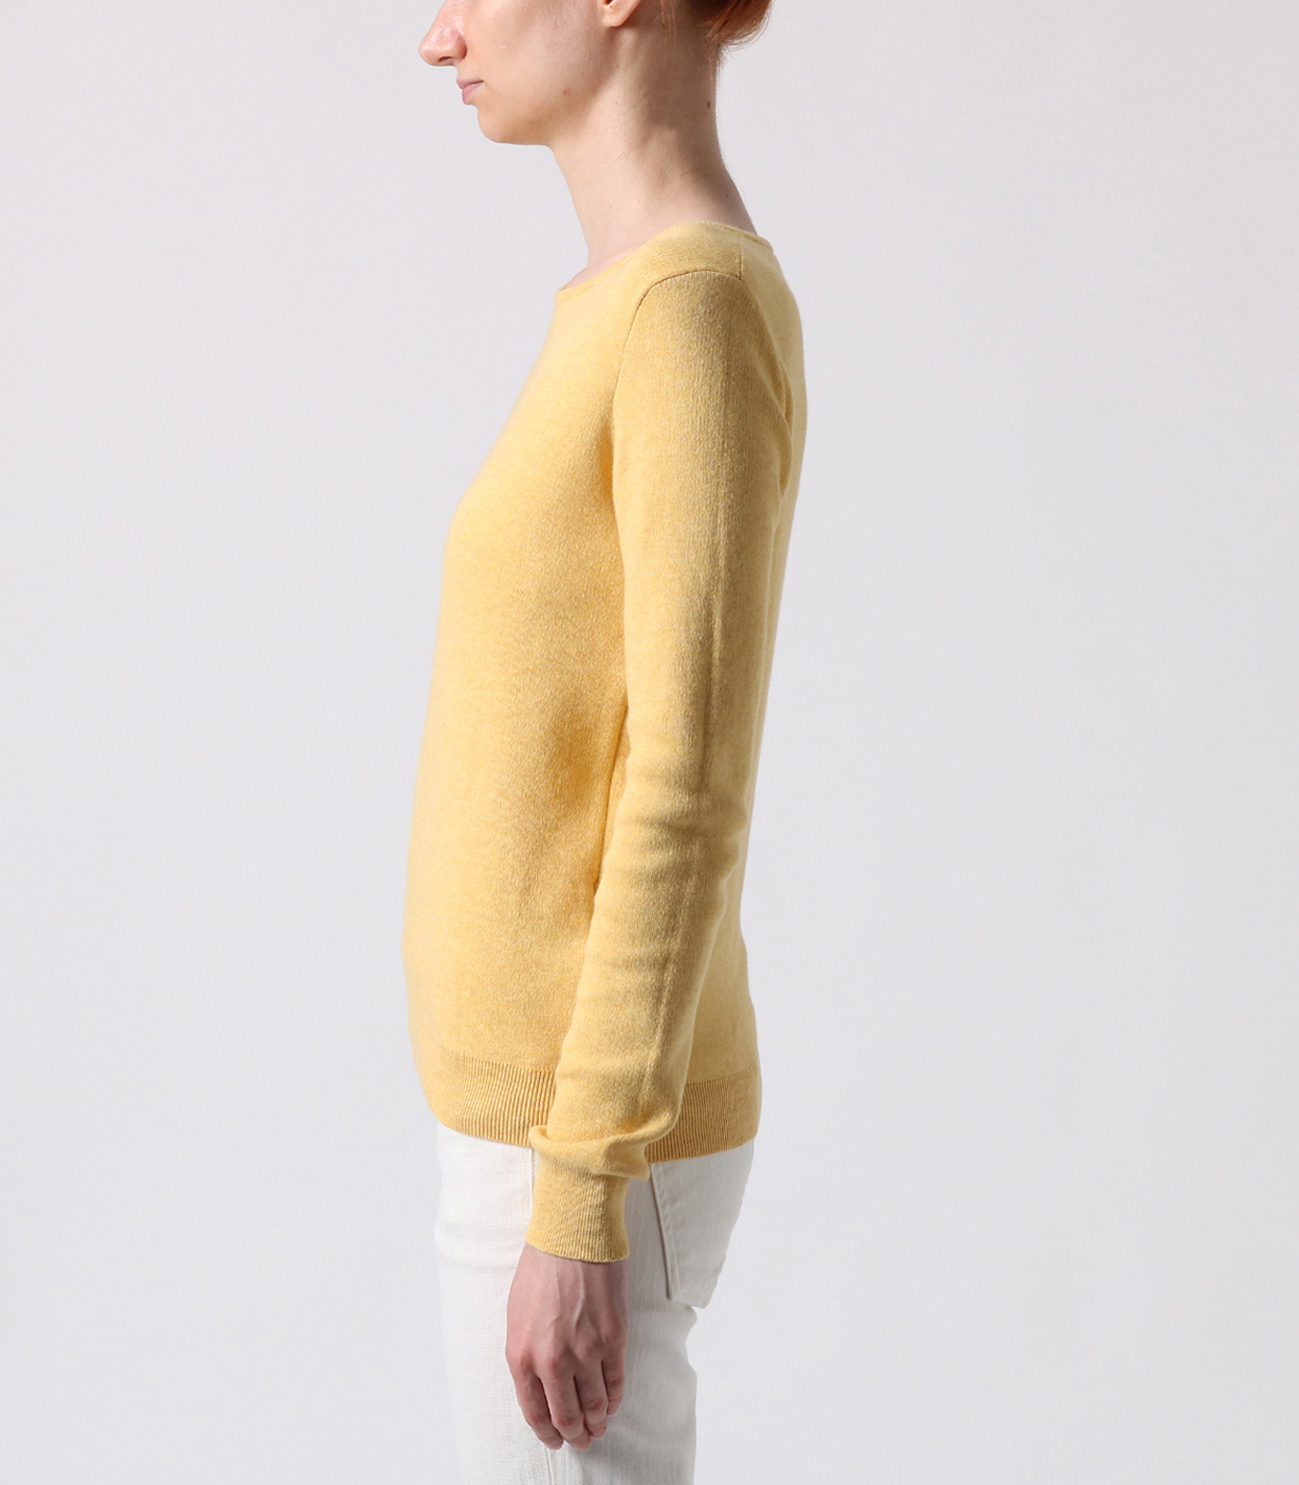 cotton melange l/s crew sweater 詳細画像 sunny 3